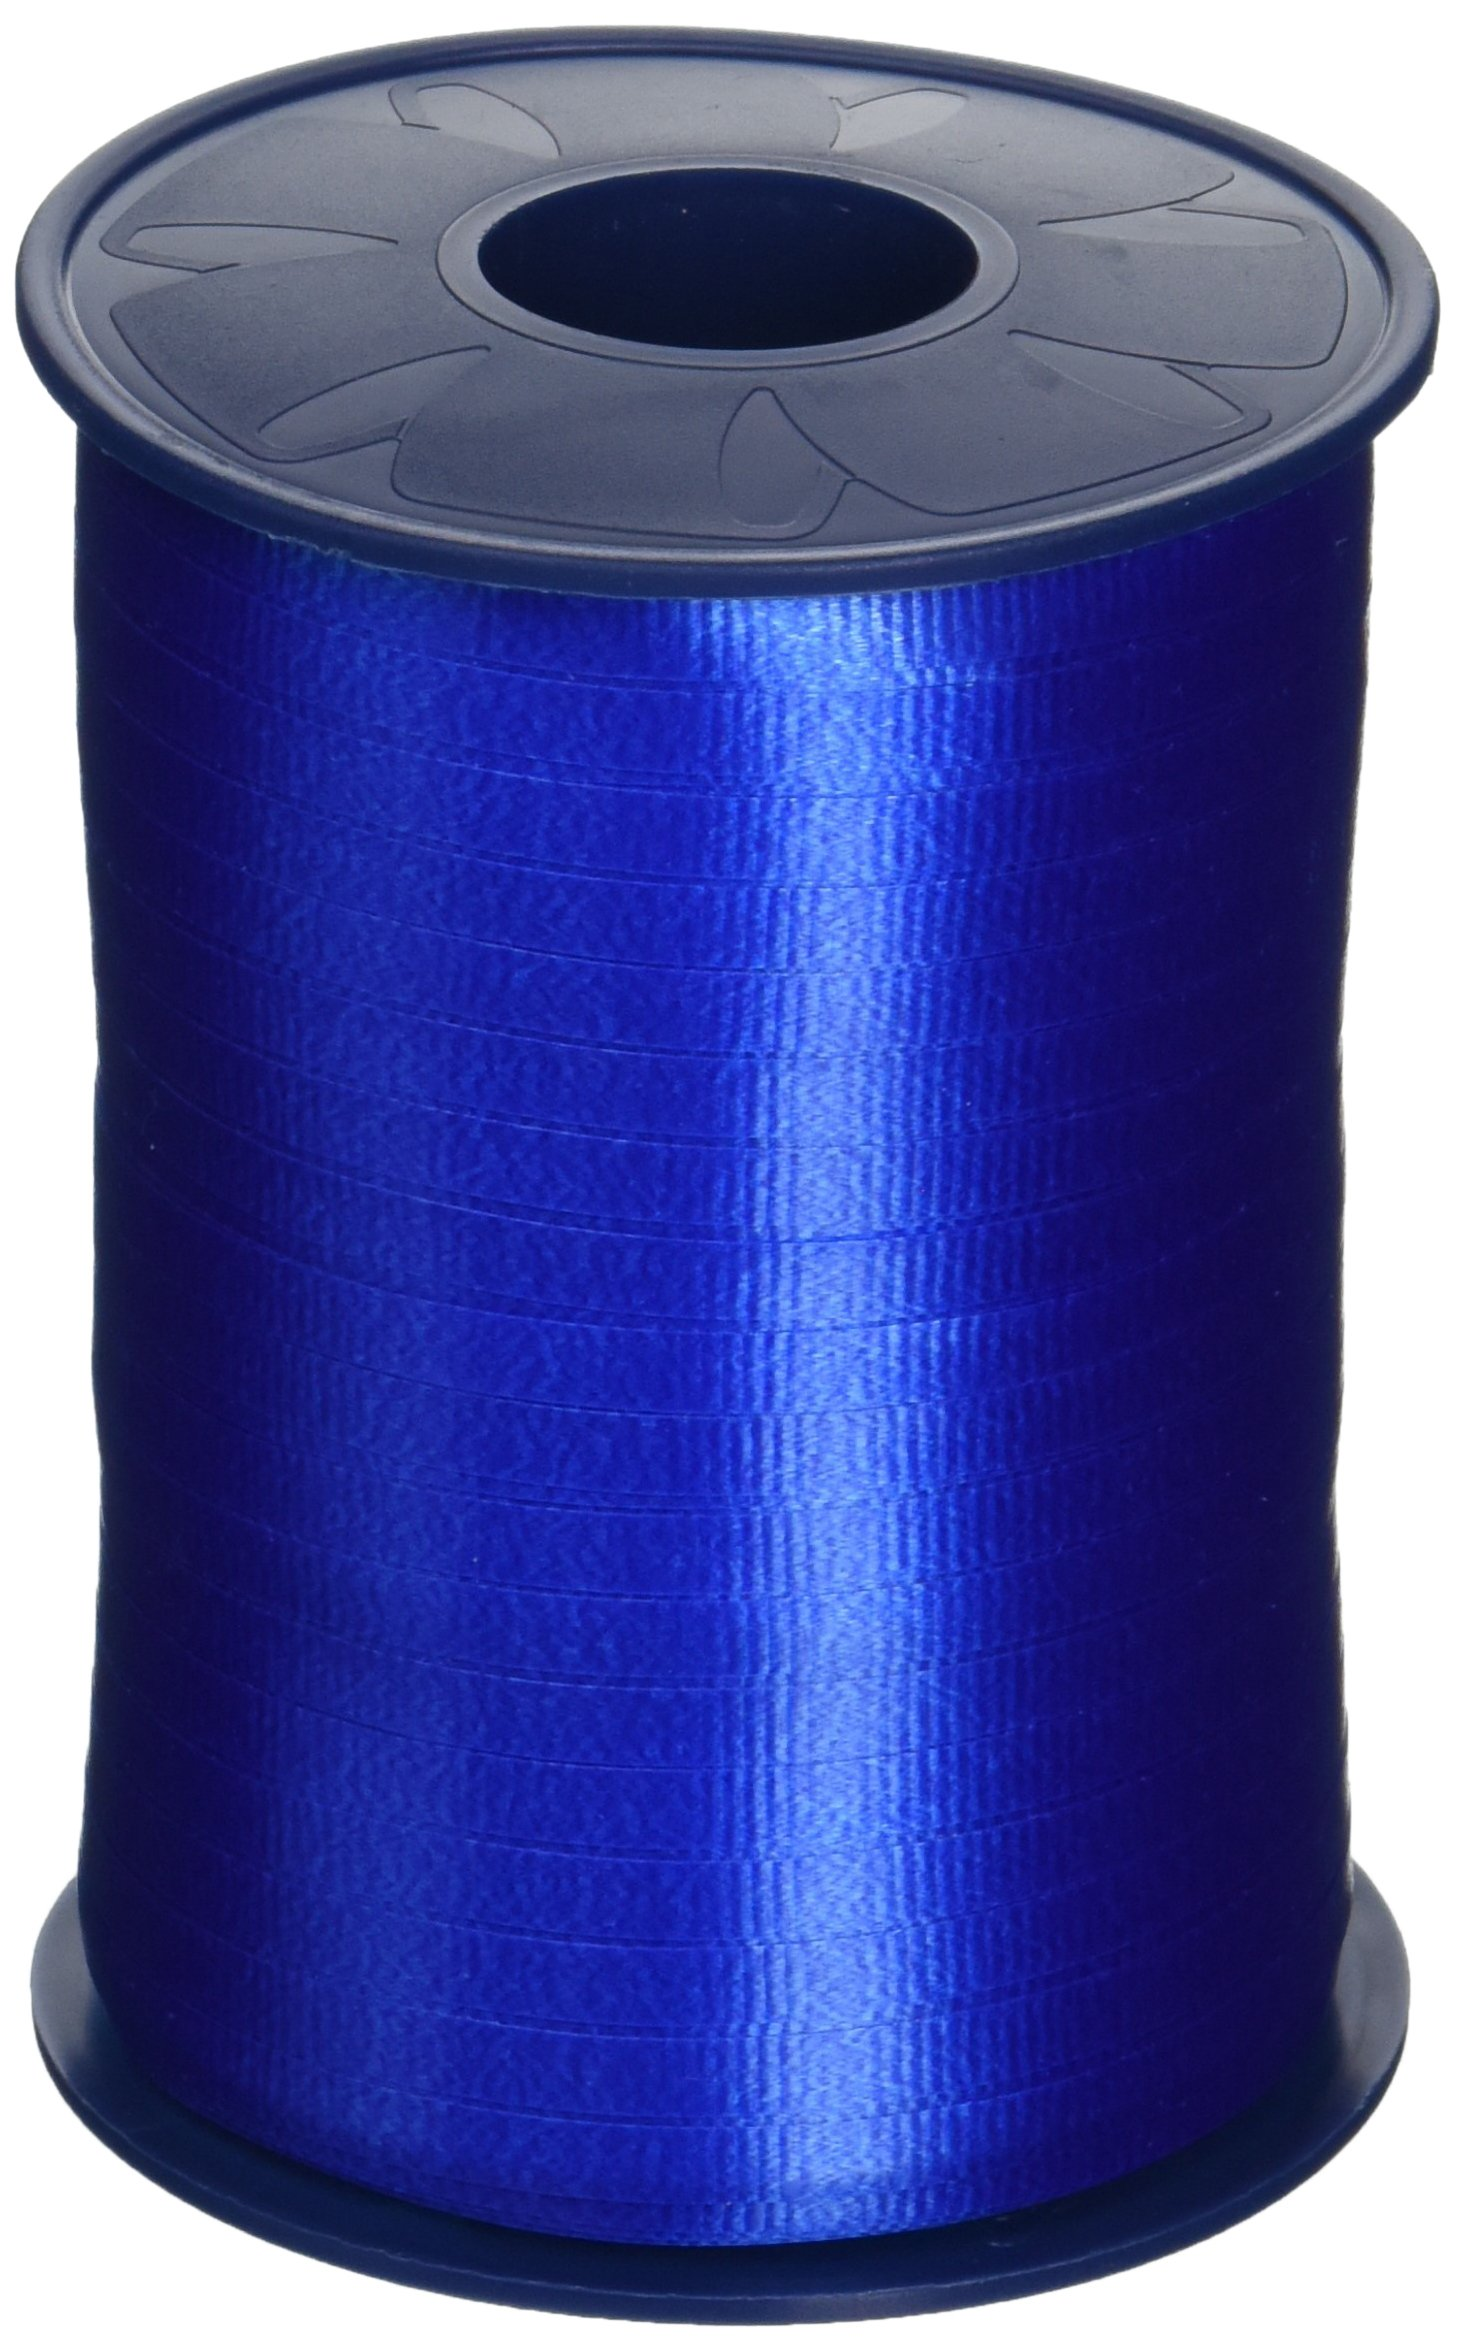 Morex Poly Crimped Curling Ribbon, 3/16-Inch by 500-Yard, Royal Blue (253/5-614)